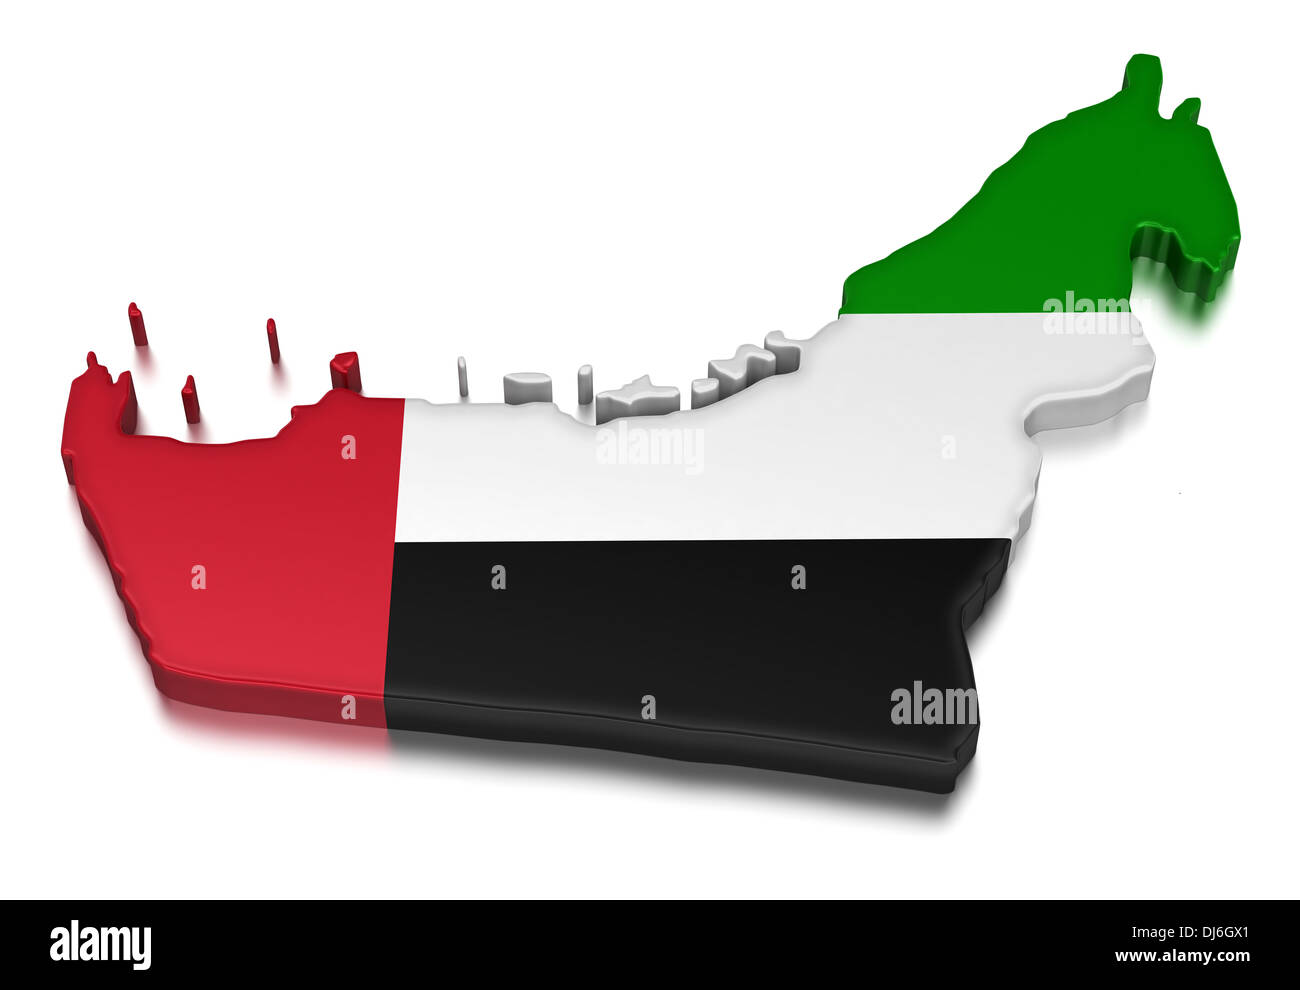 United Arab Emirates (clipping path included) - Stock Image